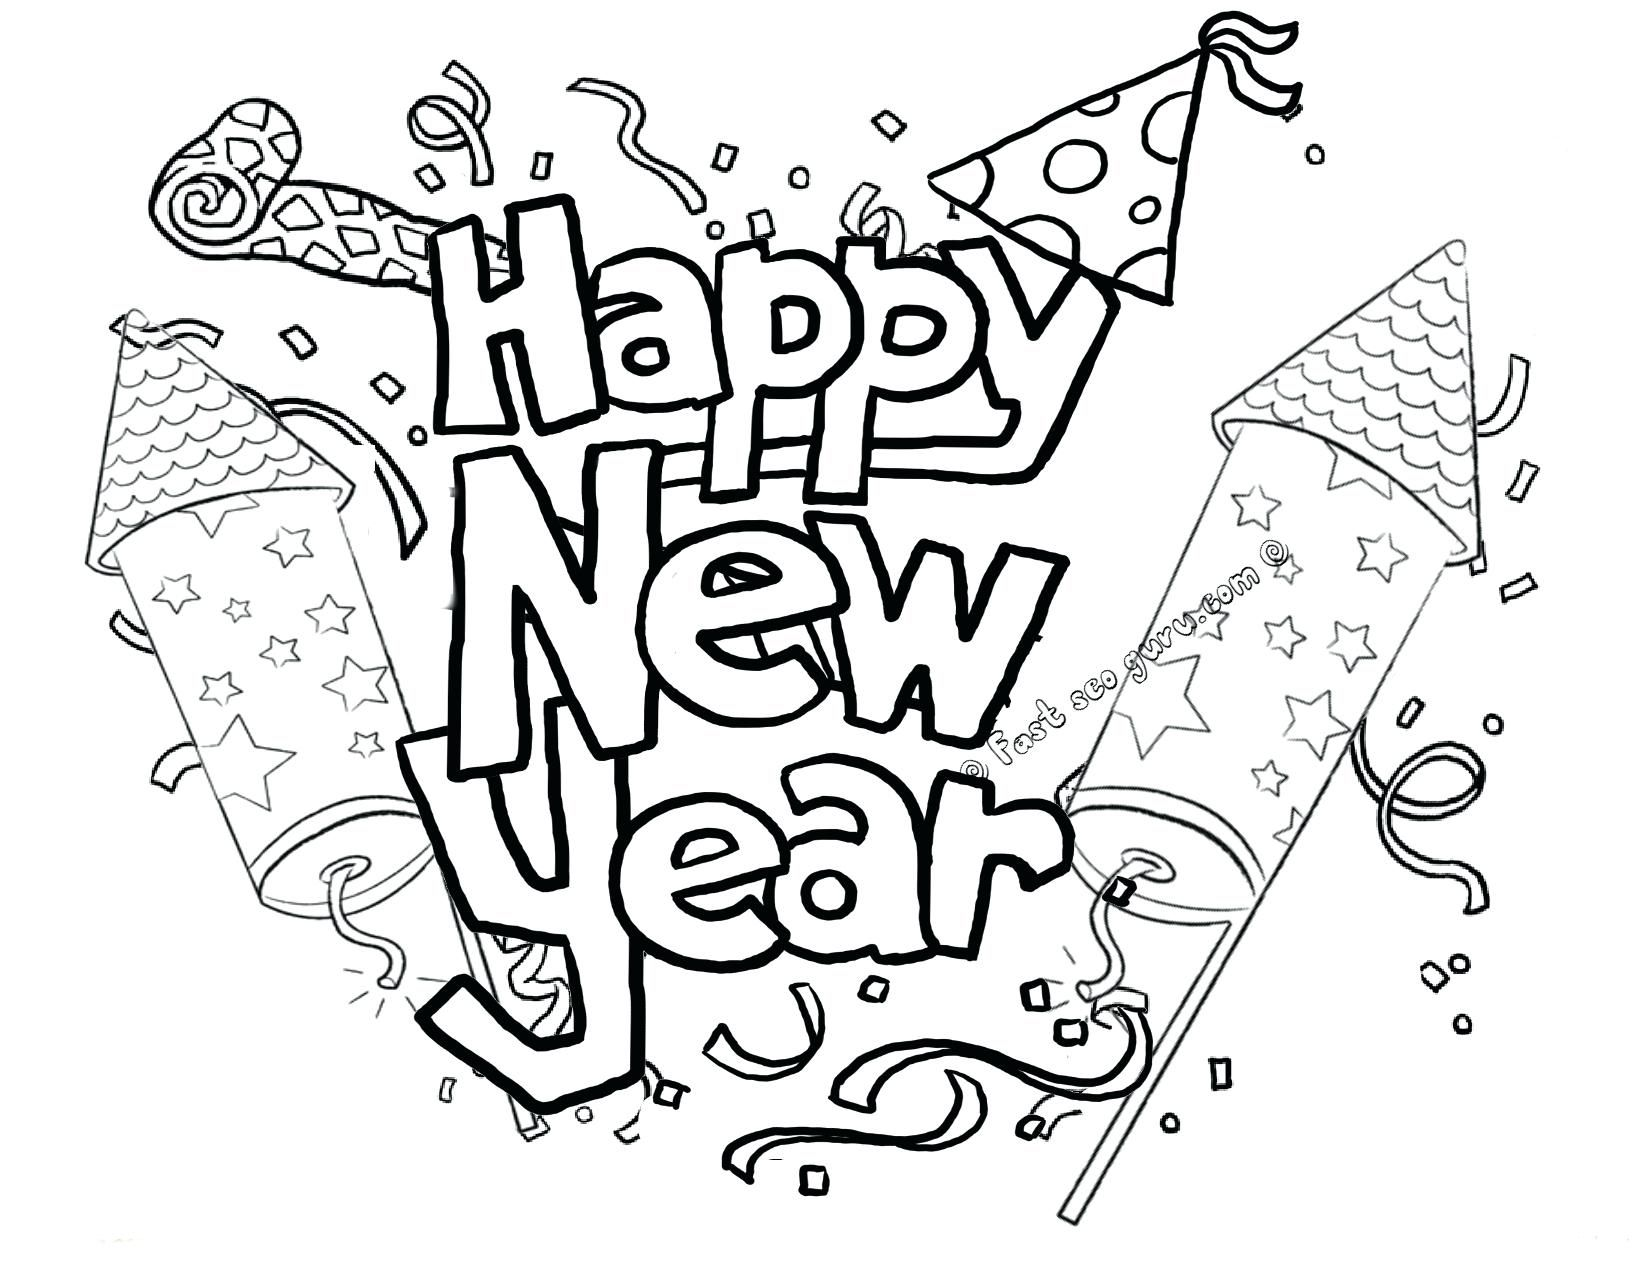 Coloring Free Printable New Years Coloring Pages For Kids Withi And Printable Coloring Pag New Year Coloring Pages Flag Coloring Pages Printable Coloring Pages